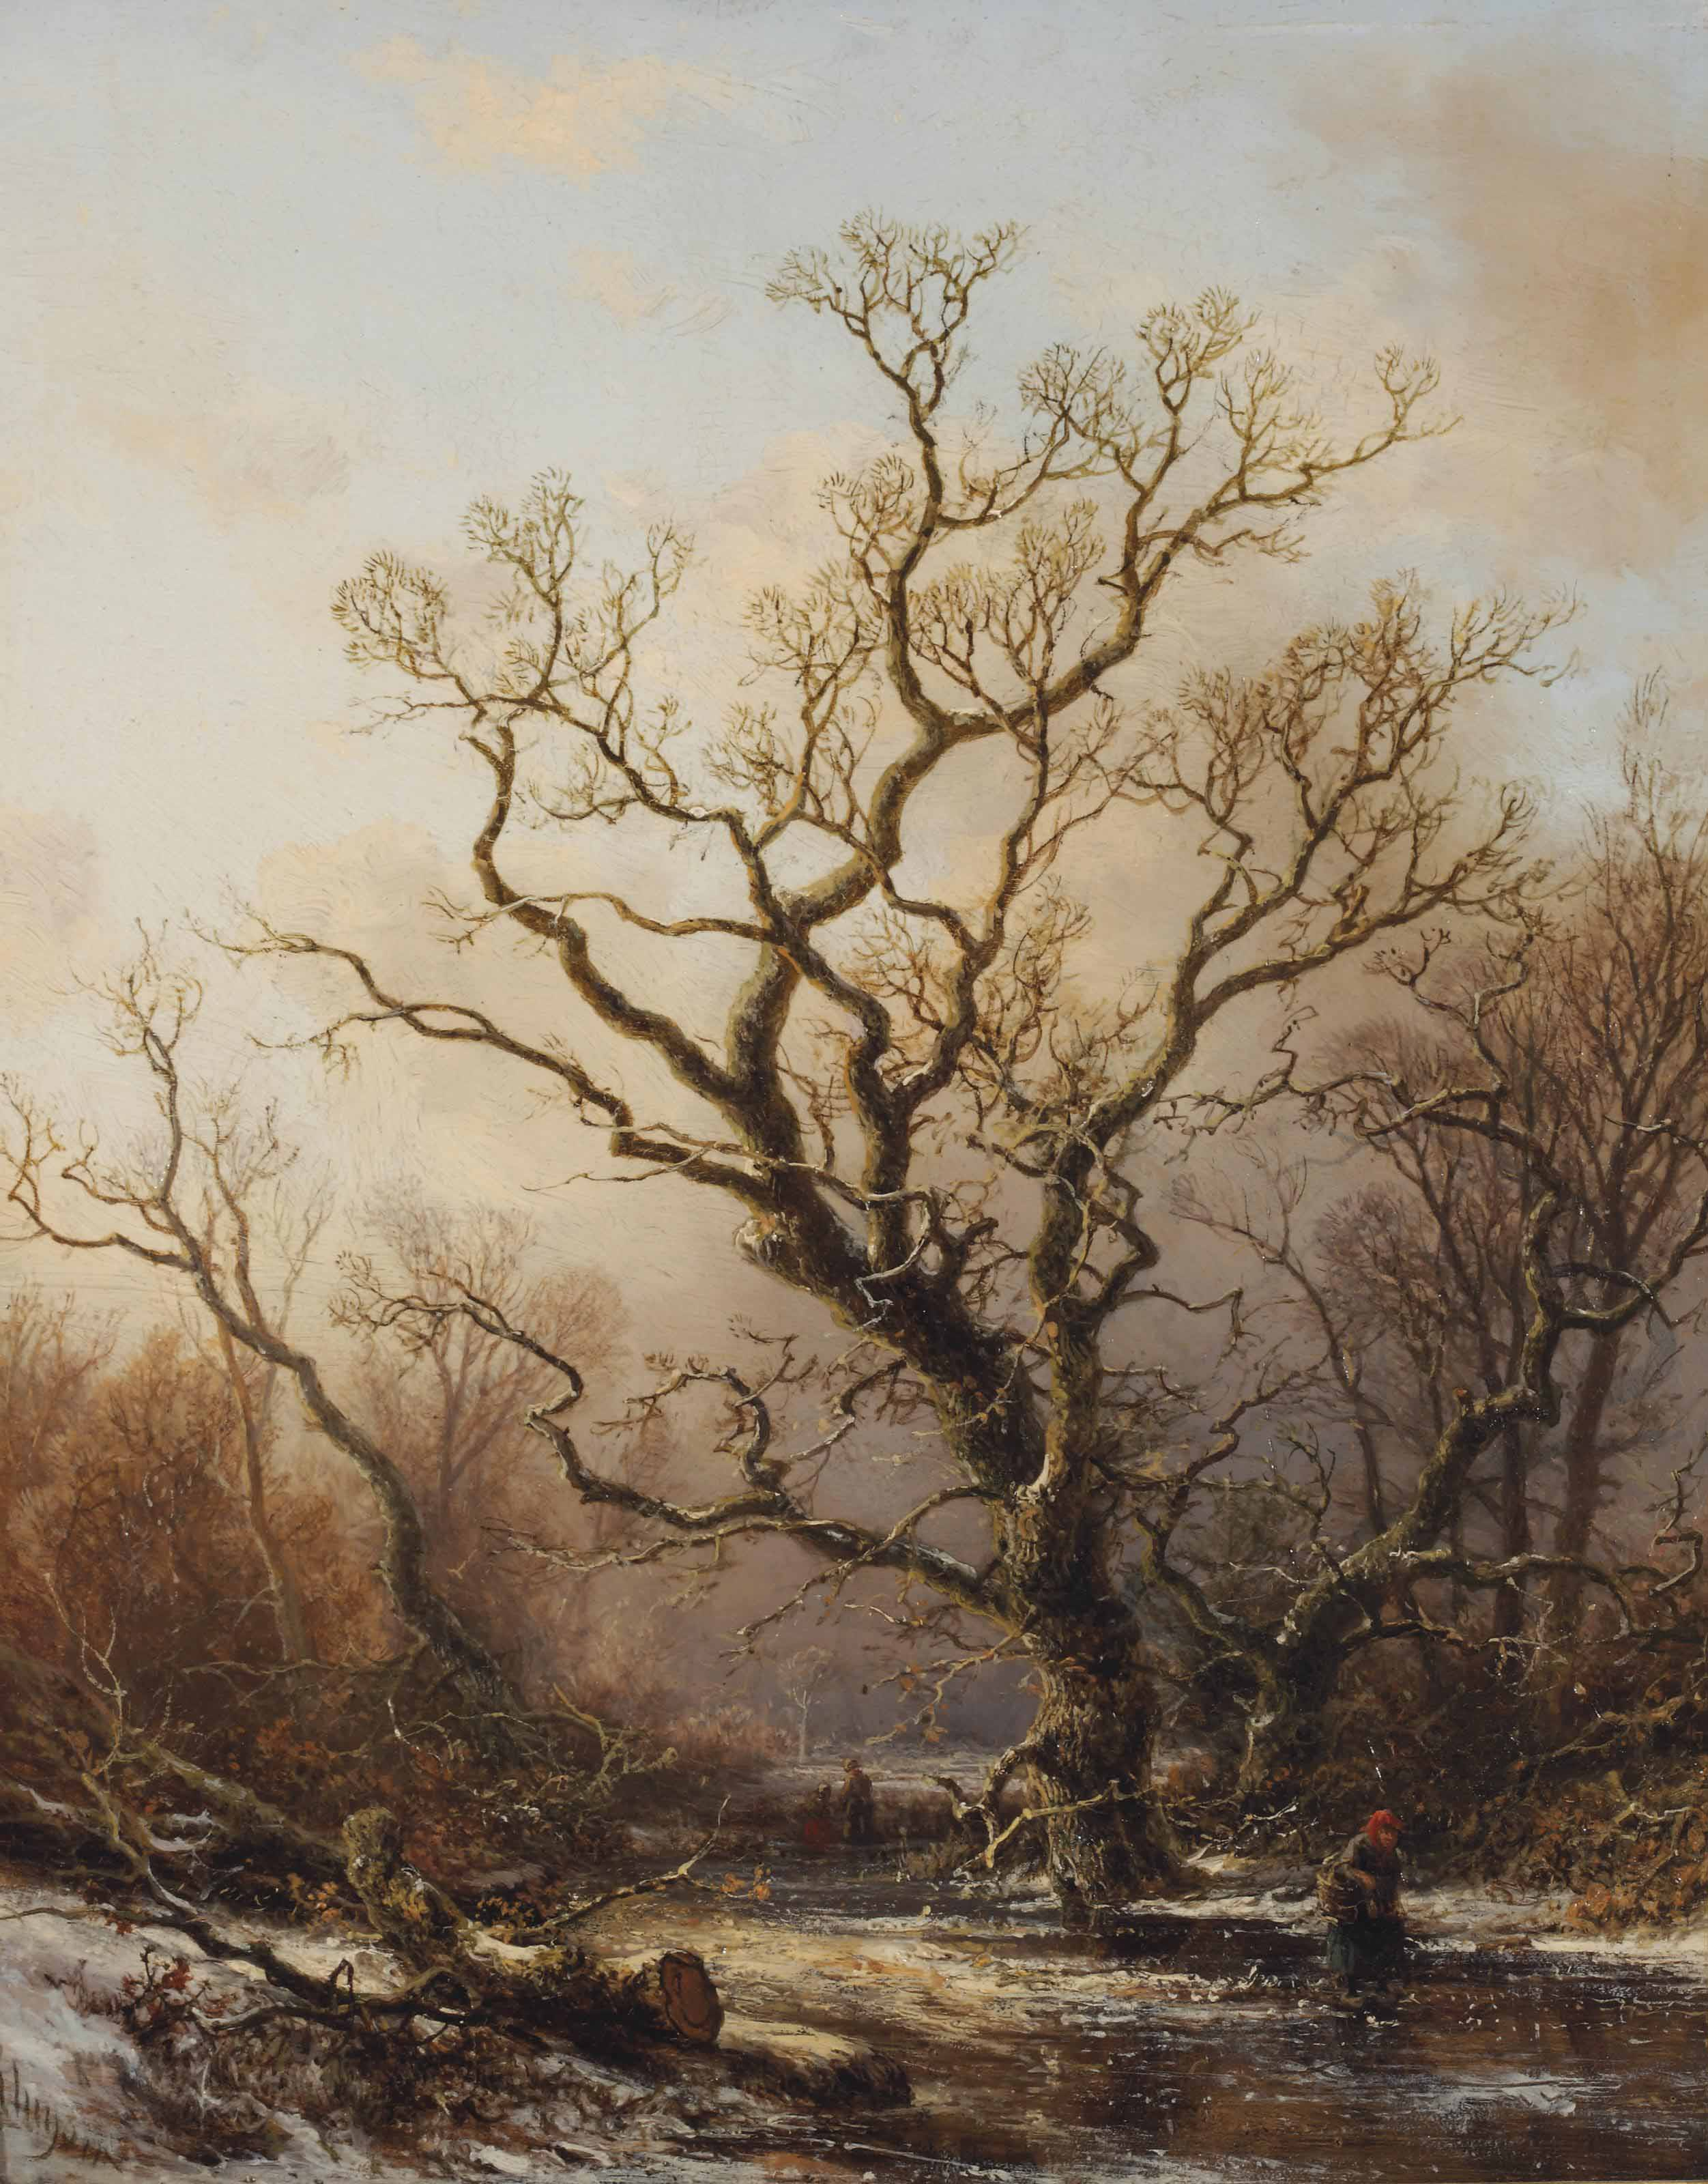 A wooded landscape in winter